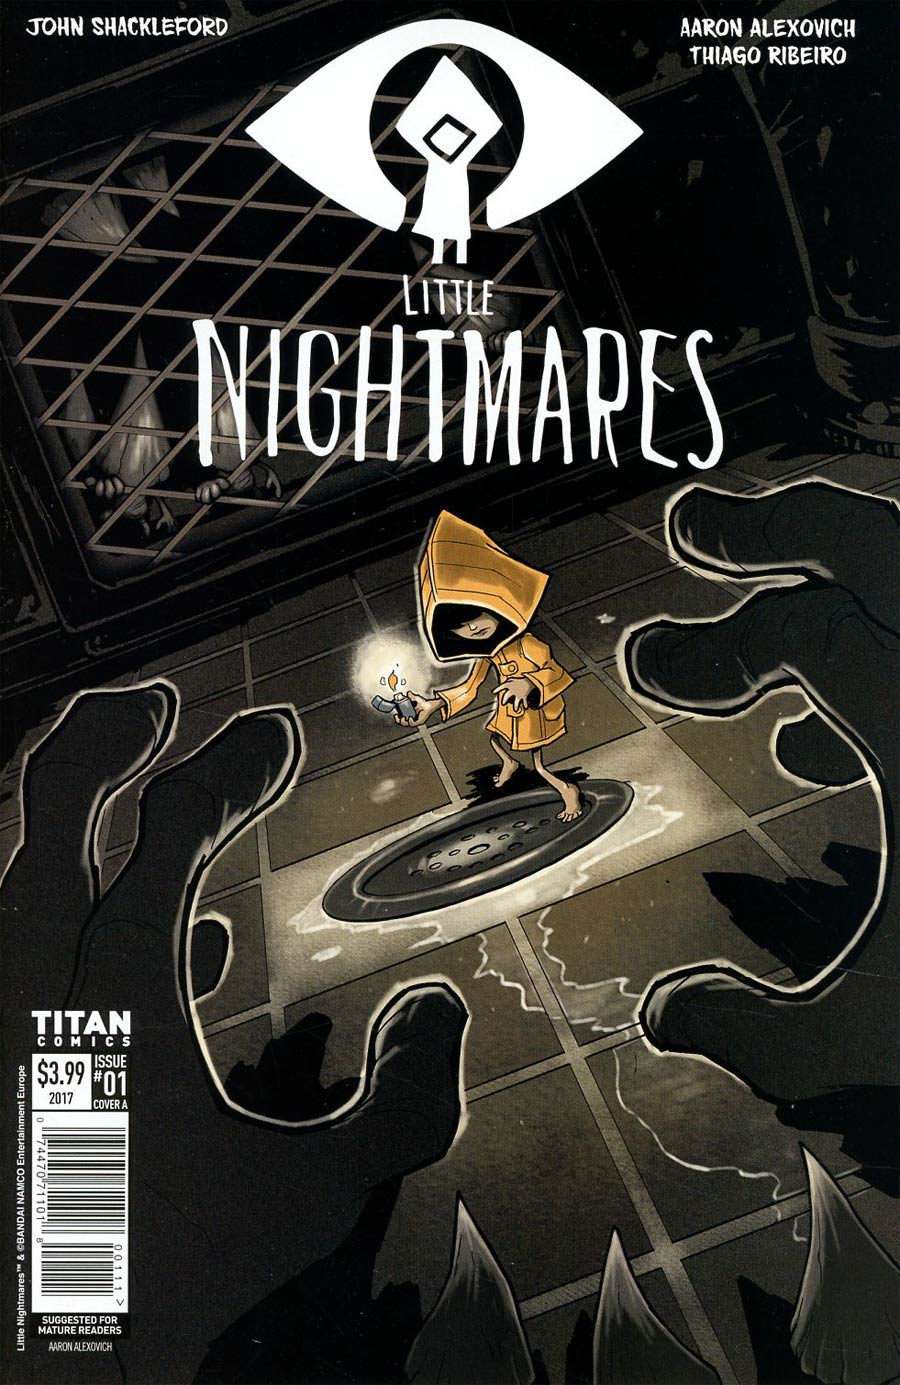 Little Nightmares #1 Cover A Regular Aaron Alexovich Cover